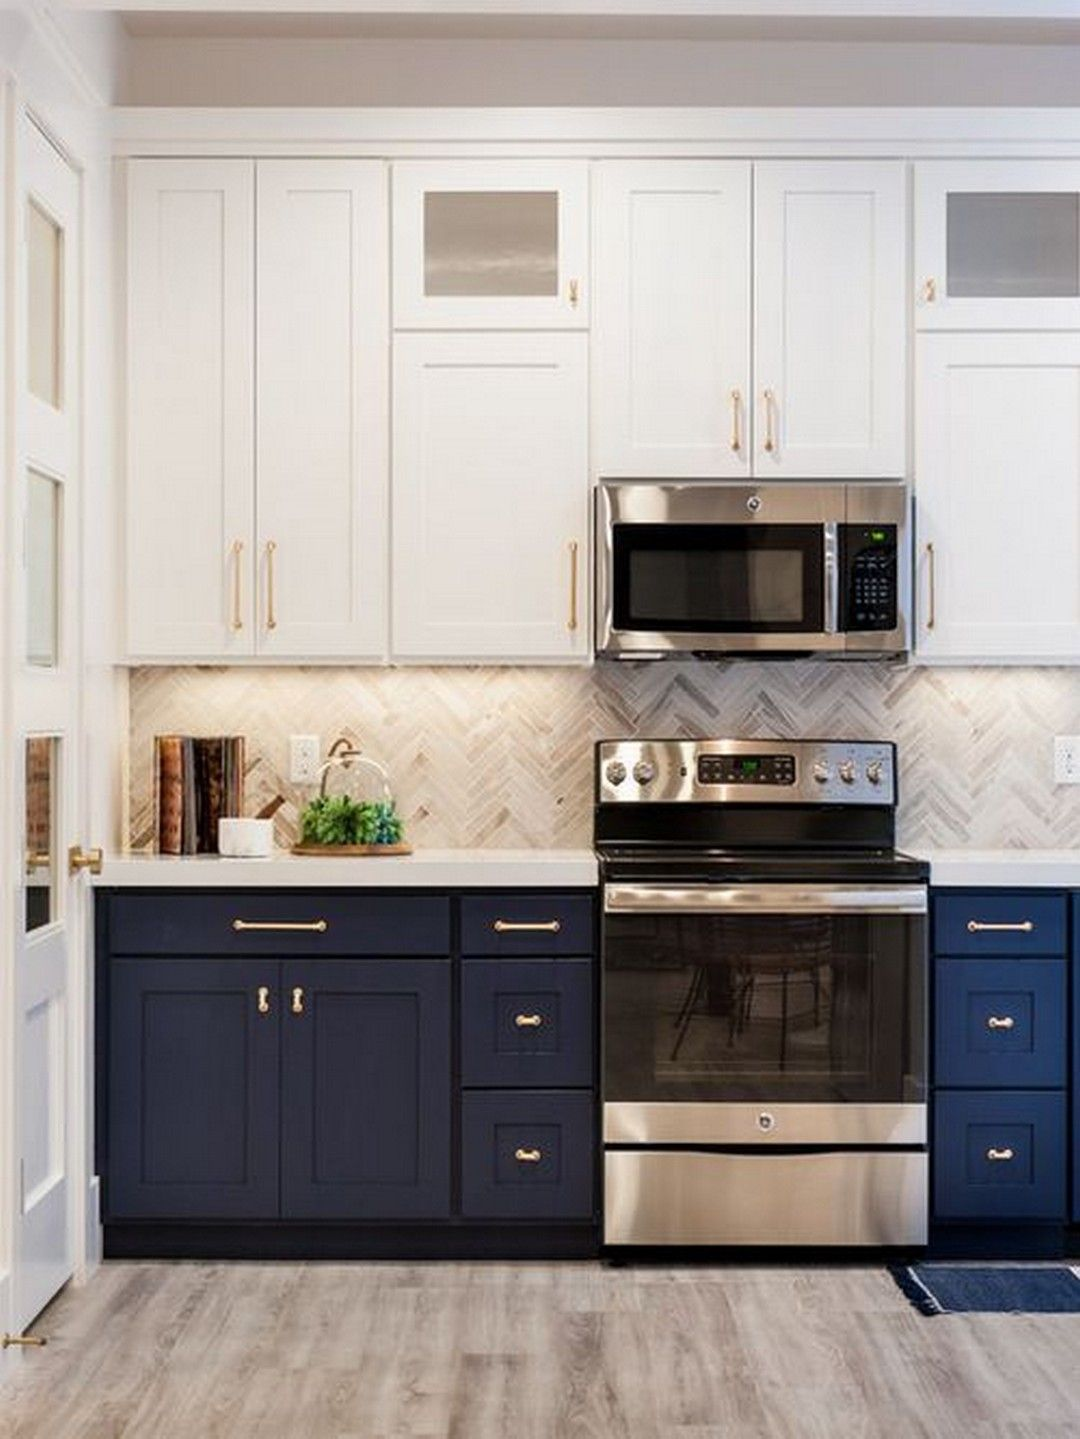 22 Two Tone Kitchen Cabinet Ideas For Your New Kitchen Kitchen Cabinet Design Upper Kitchen Cabinets Kitchen Cabinets Decor